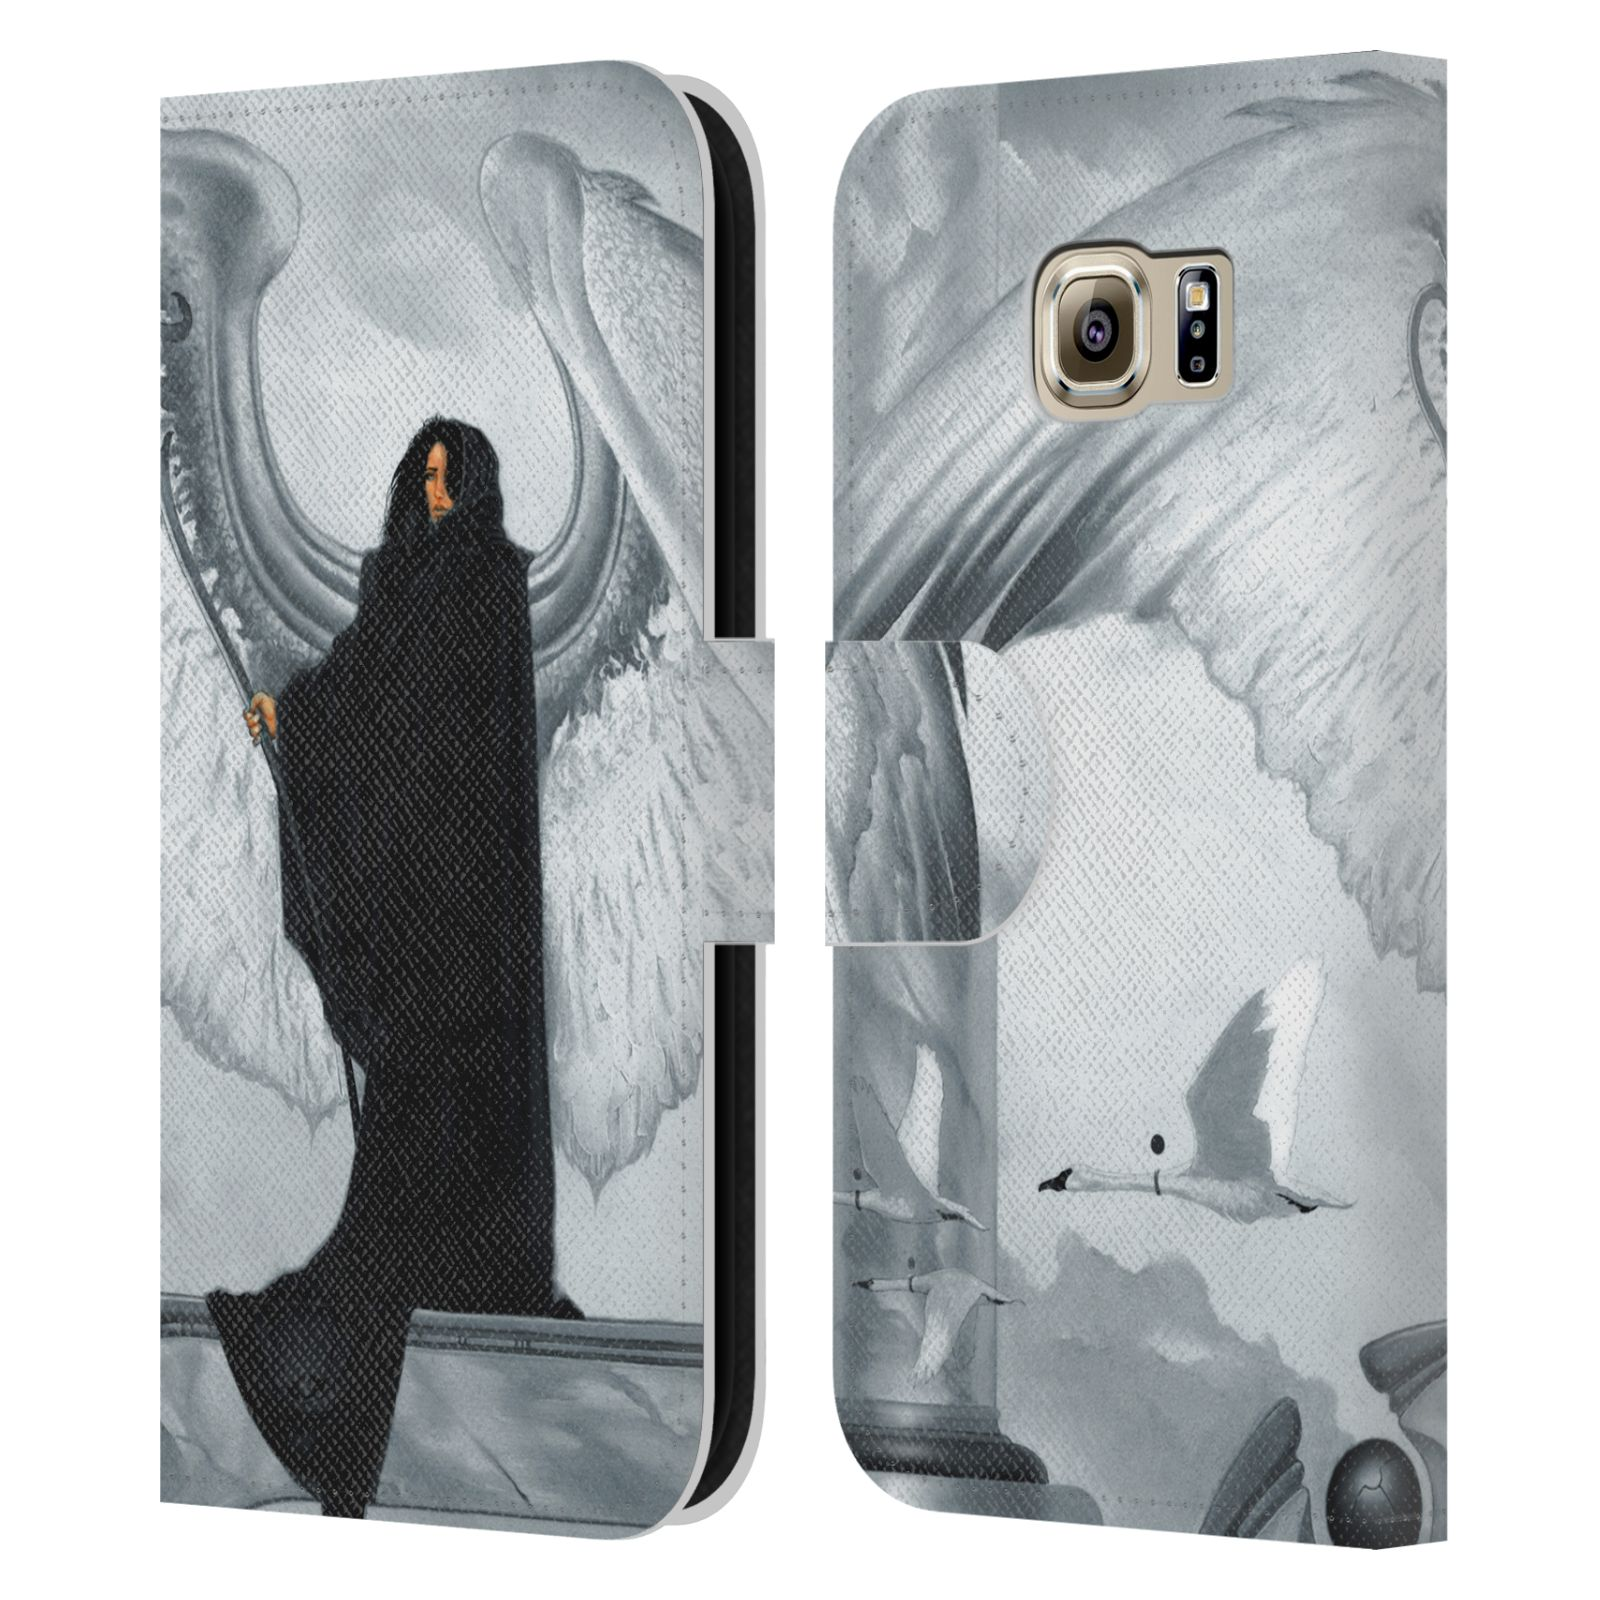 OFFICIAL-LA-WILLIAMS-ANGELS-LEATHER-BOOK-WALLET-CASE-COVER-FOR-SAMSUNG-PHONES-1